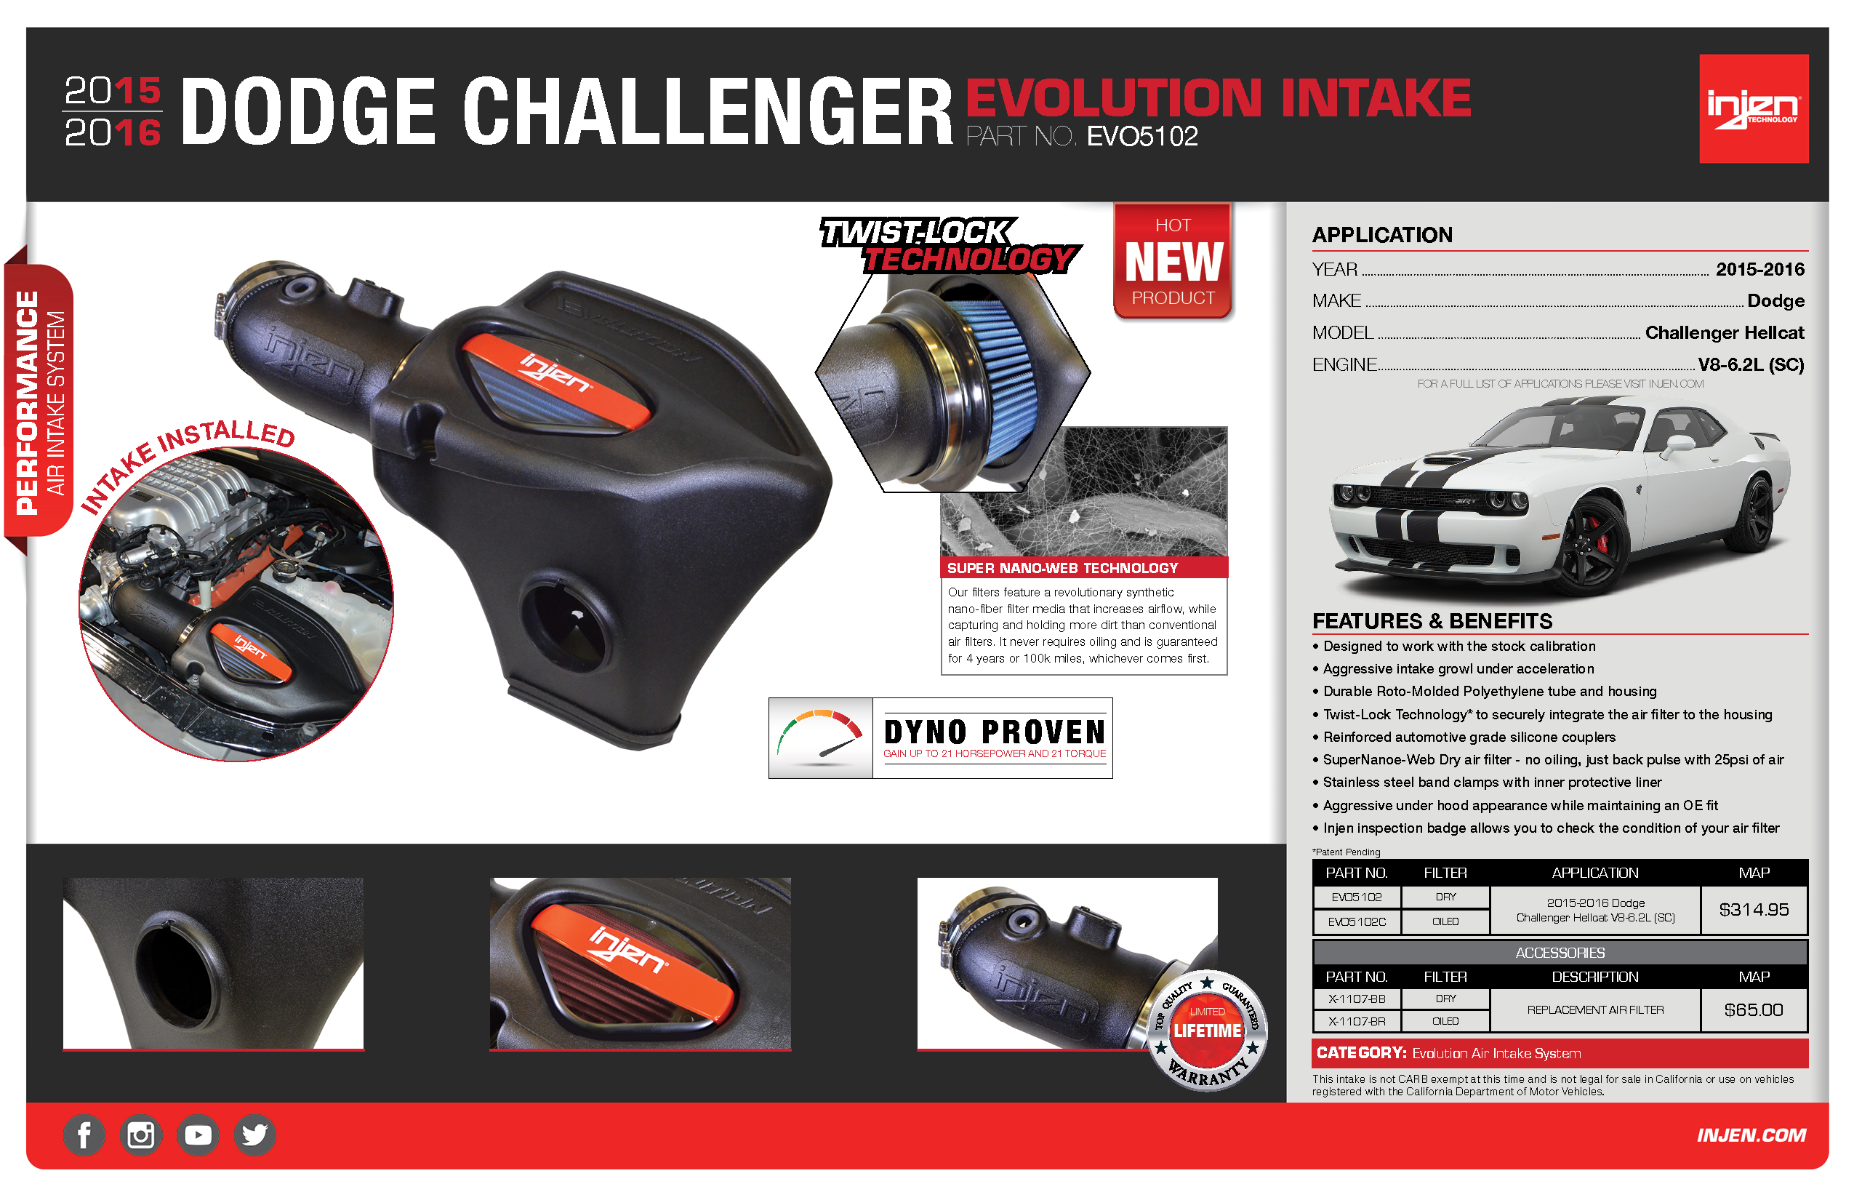 The Injen Evo5102 Check Out The All New Intake For The 2015 2016 Dodge Challenger And Charger Hellcat